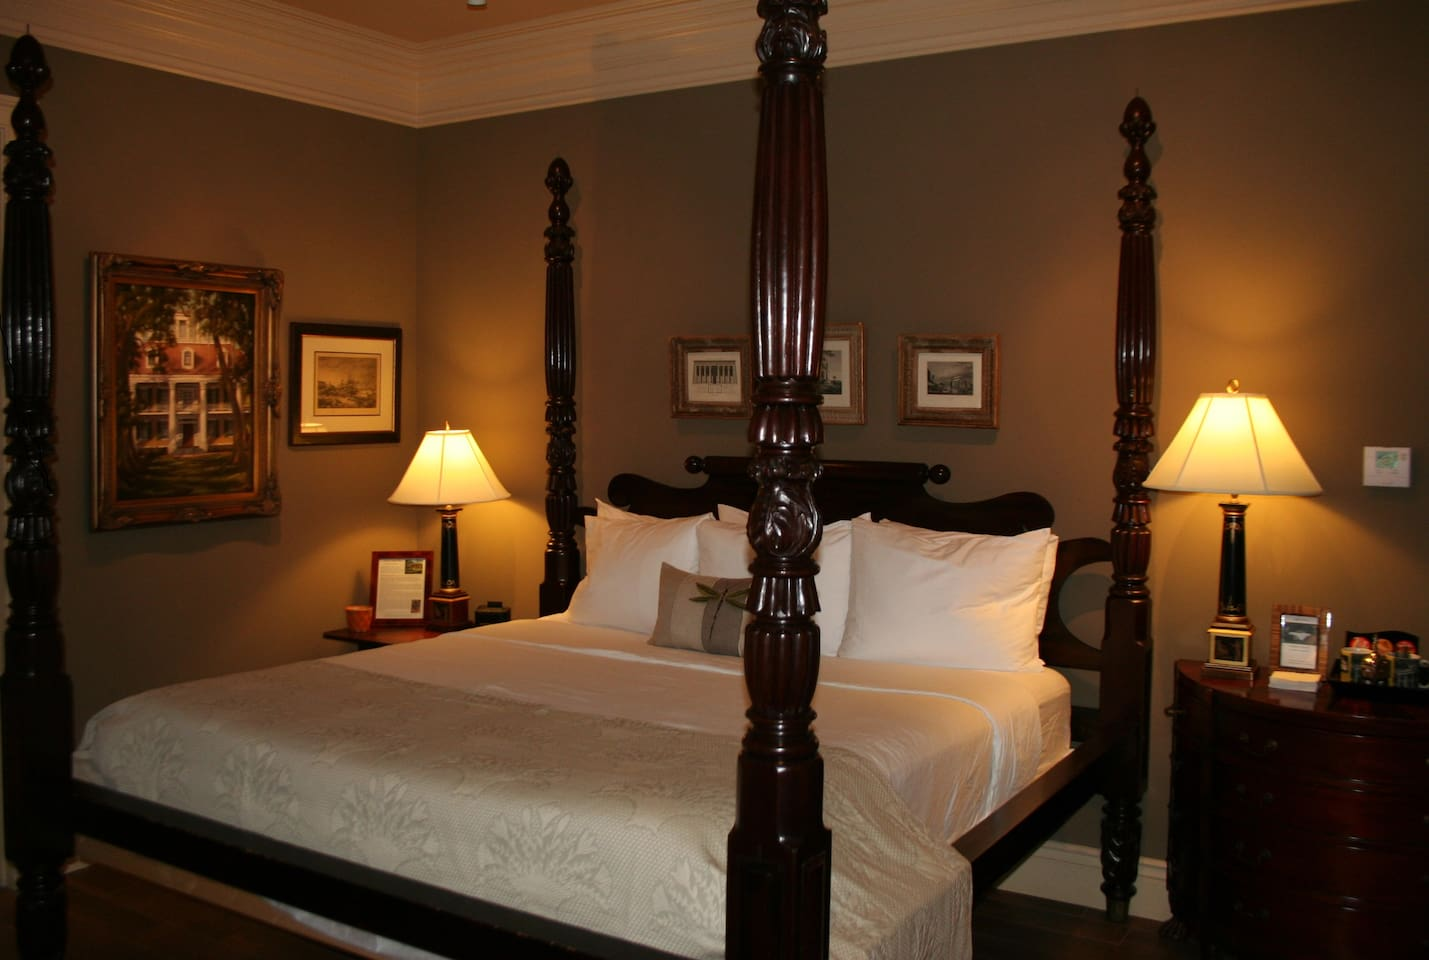 Cozy room with King bed, perfect for a romantic getaway.